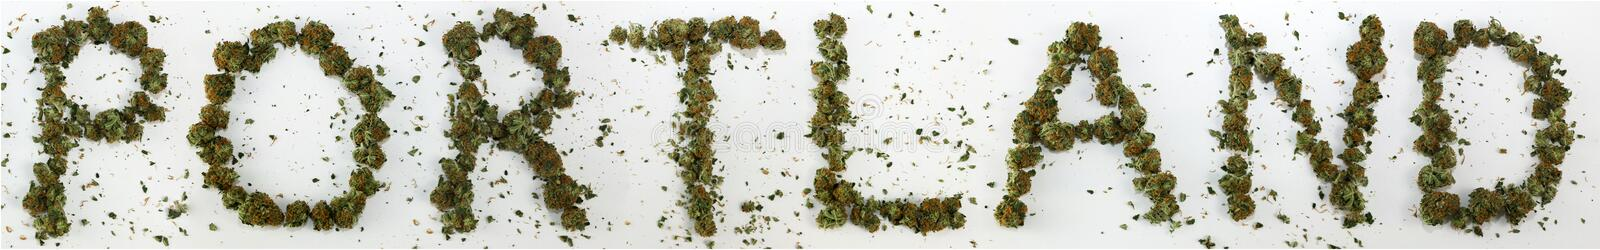 Portland Spelled With Marijuana. The word Portland spelled out with real marijuana stock images